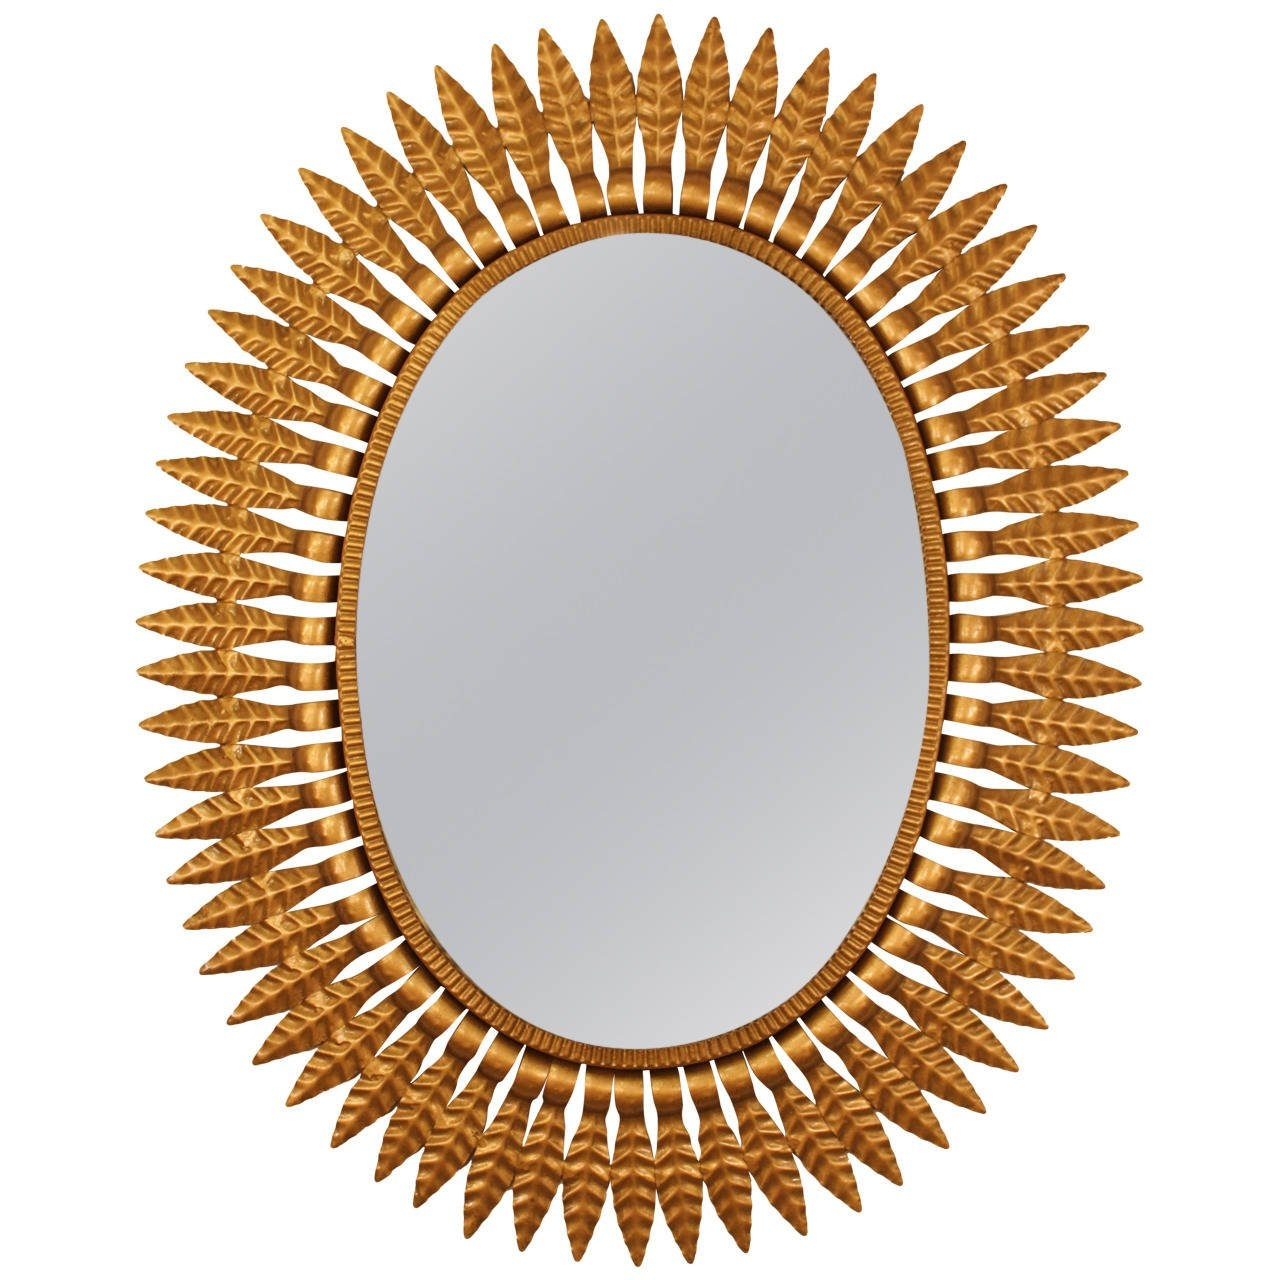 Hollywood Regency Gilt Metal Oval Sunburst Mirror For Sale At 1stdibs With Regard To Large Sunburst Mirrors For Sale (Image 3 of 15)